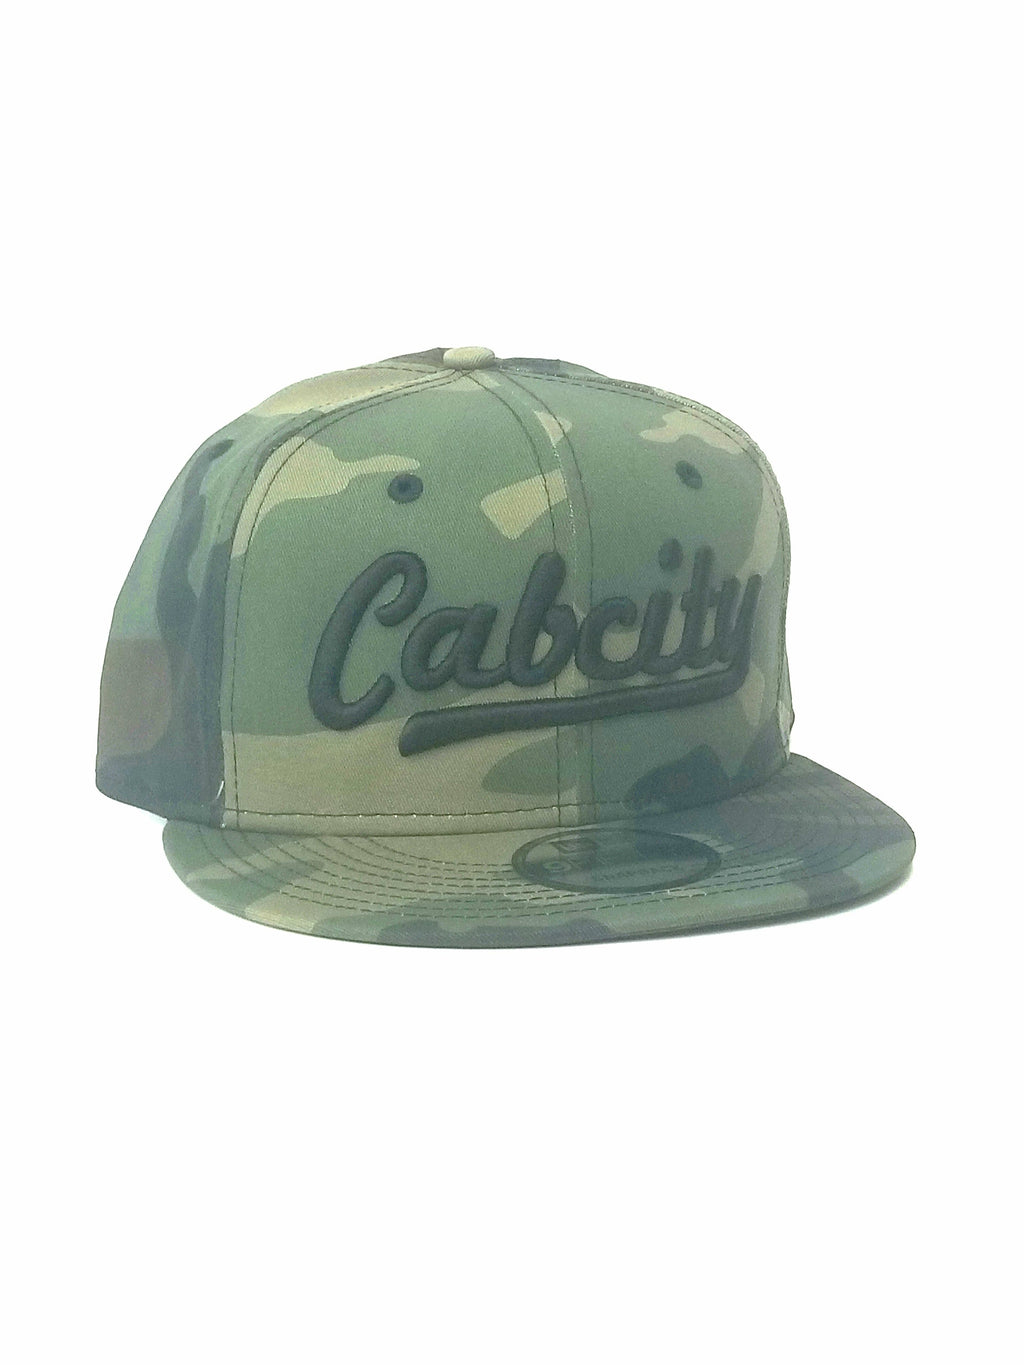 CAMO OG Collection CABCITY